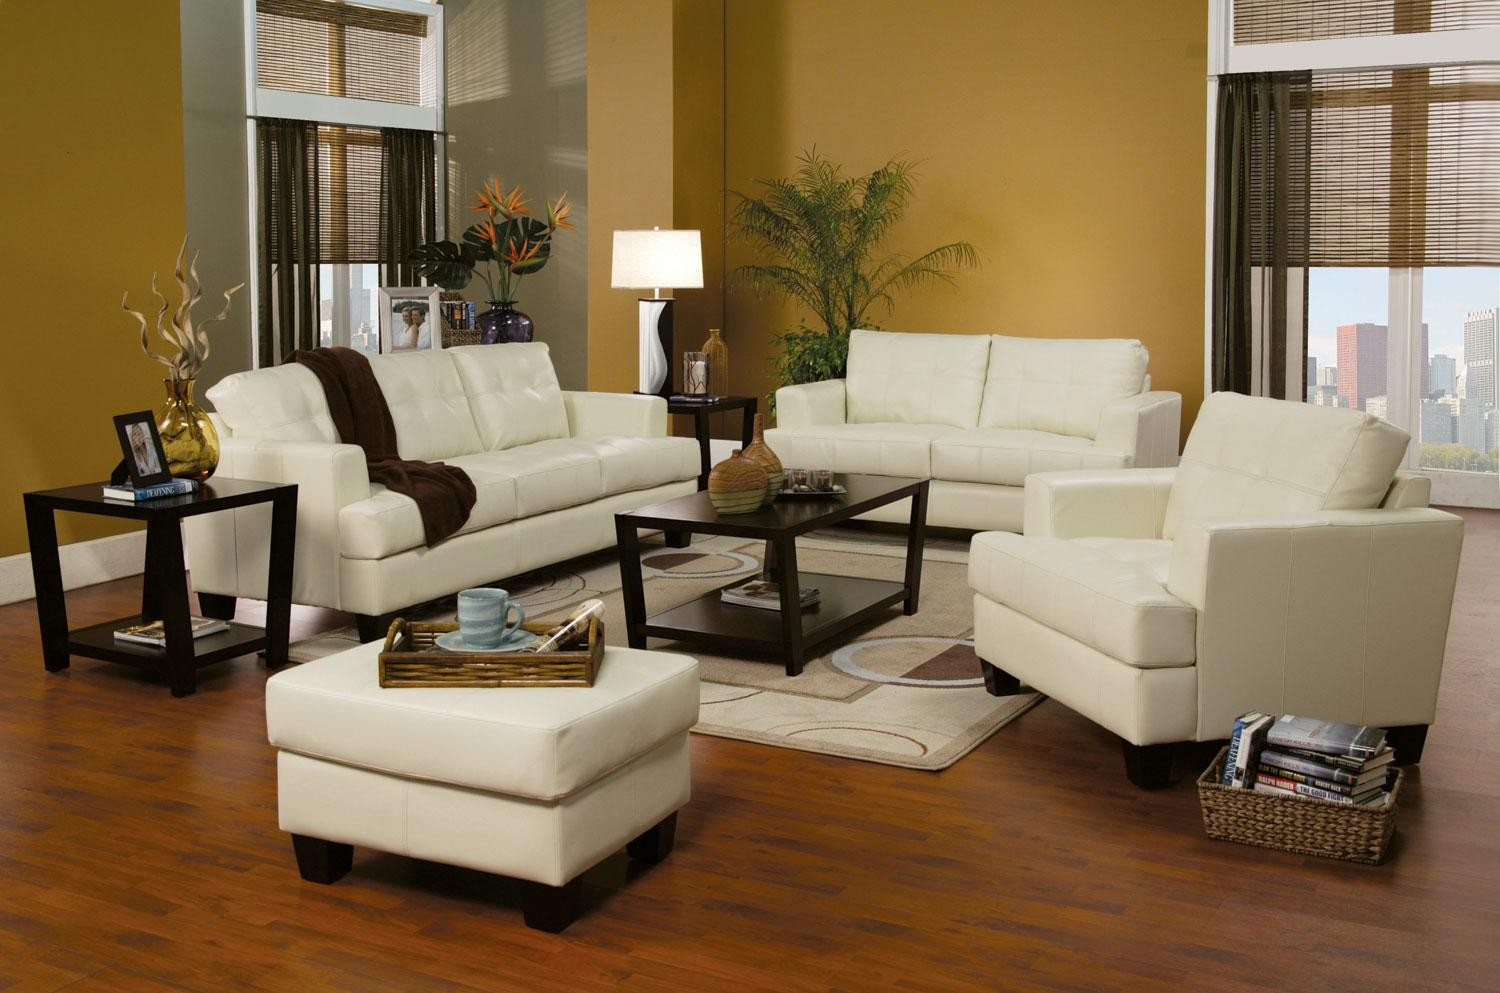 cream leather living room chairs samuel cream leather living room set 501691 from coaster 13608 | 10 4